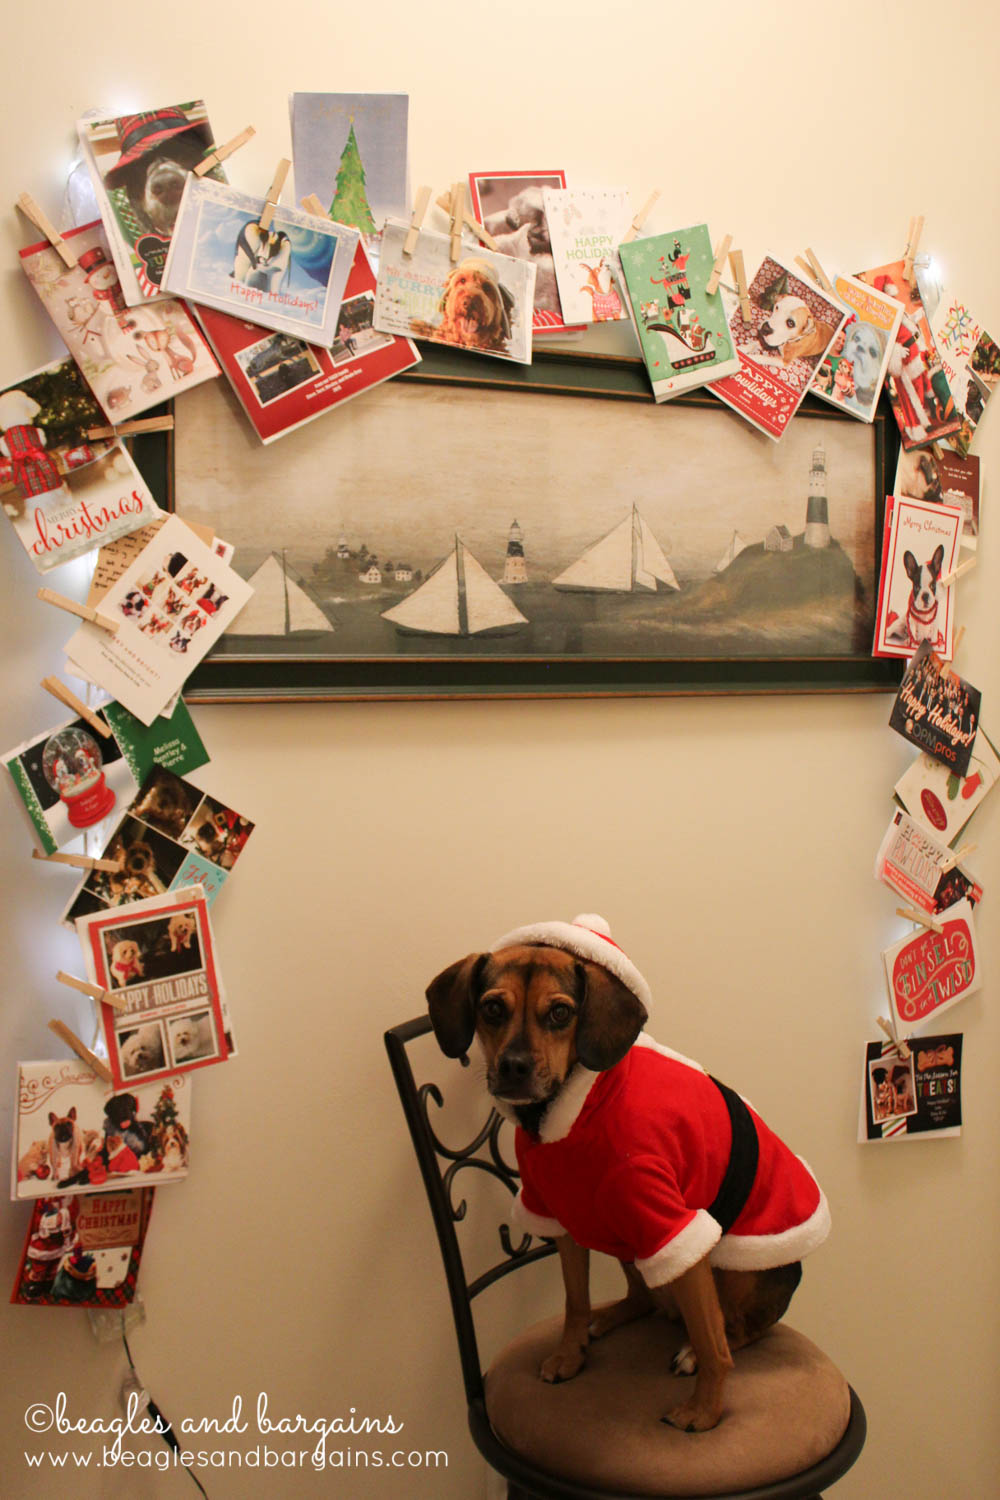 Luna with our 2015 Christmas cards from all our friends and family!